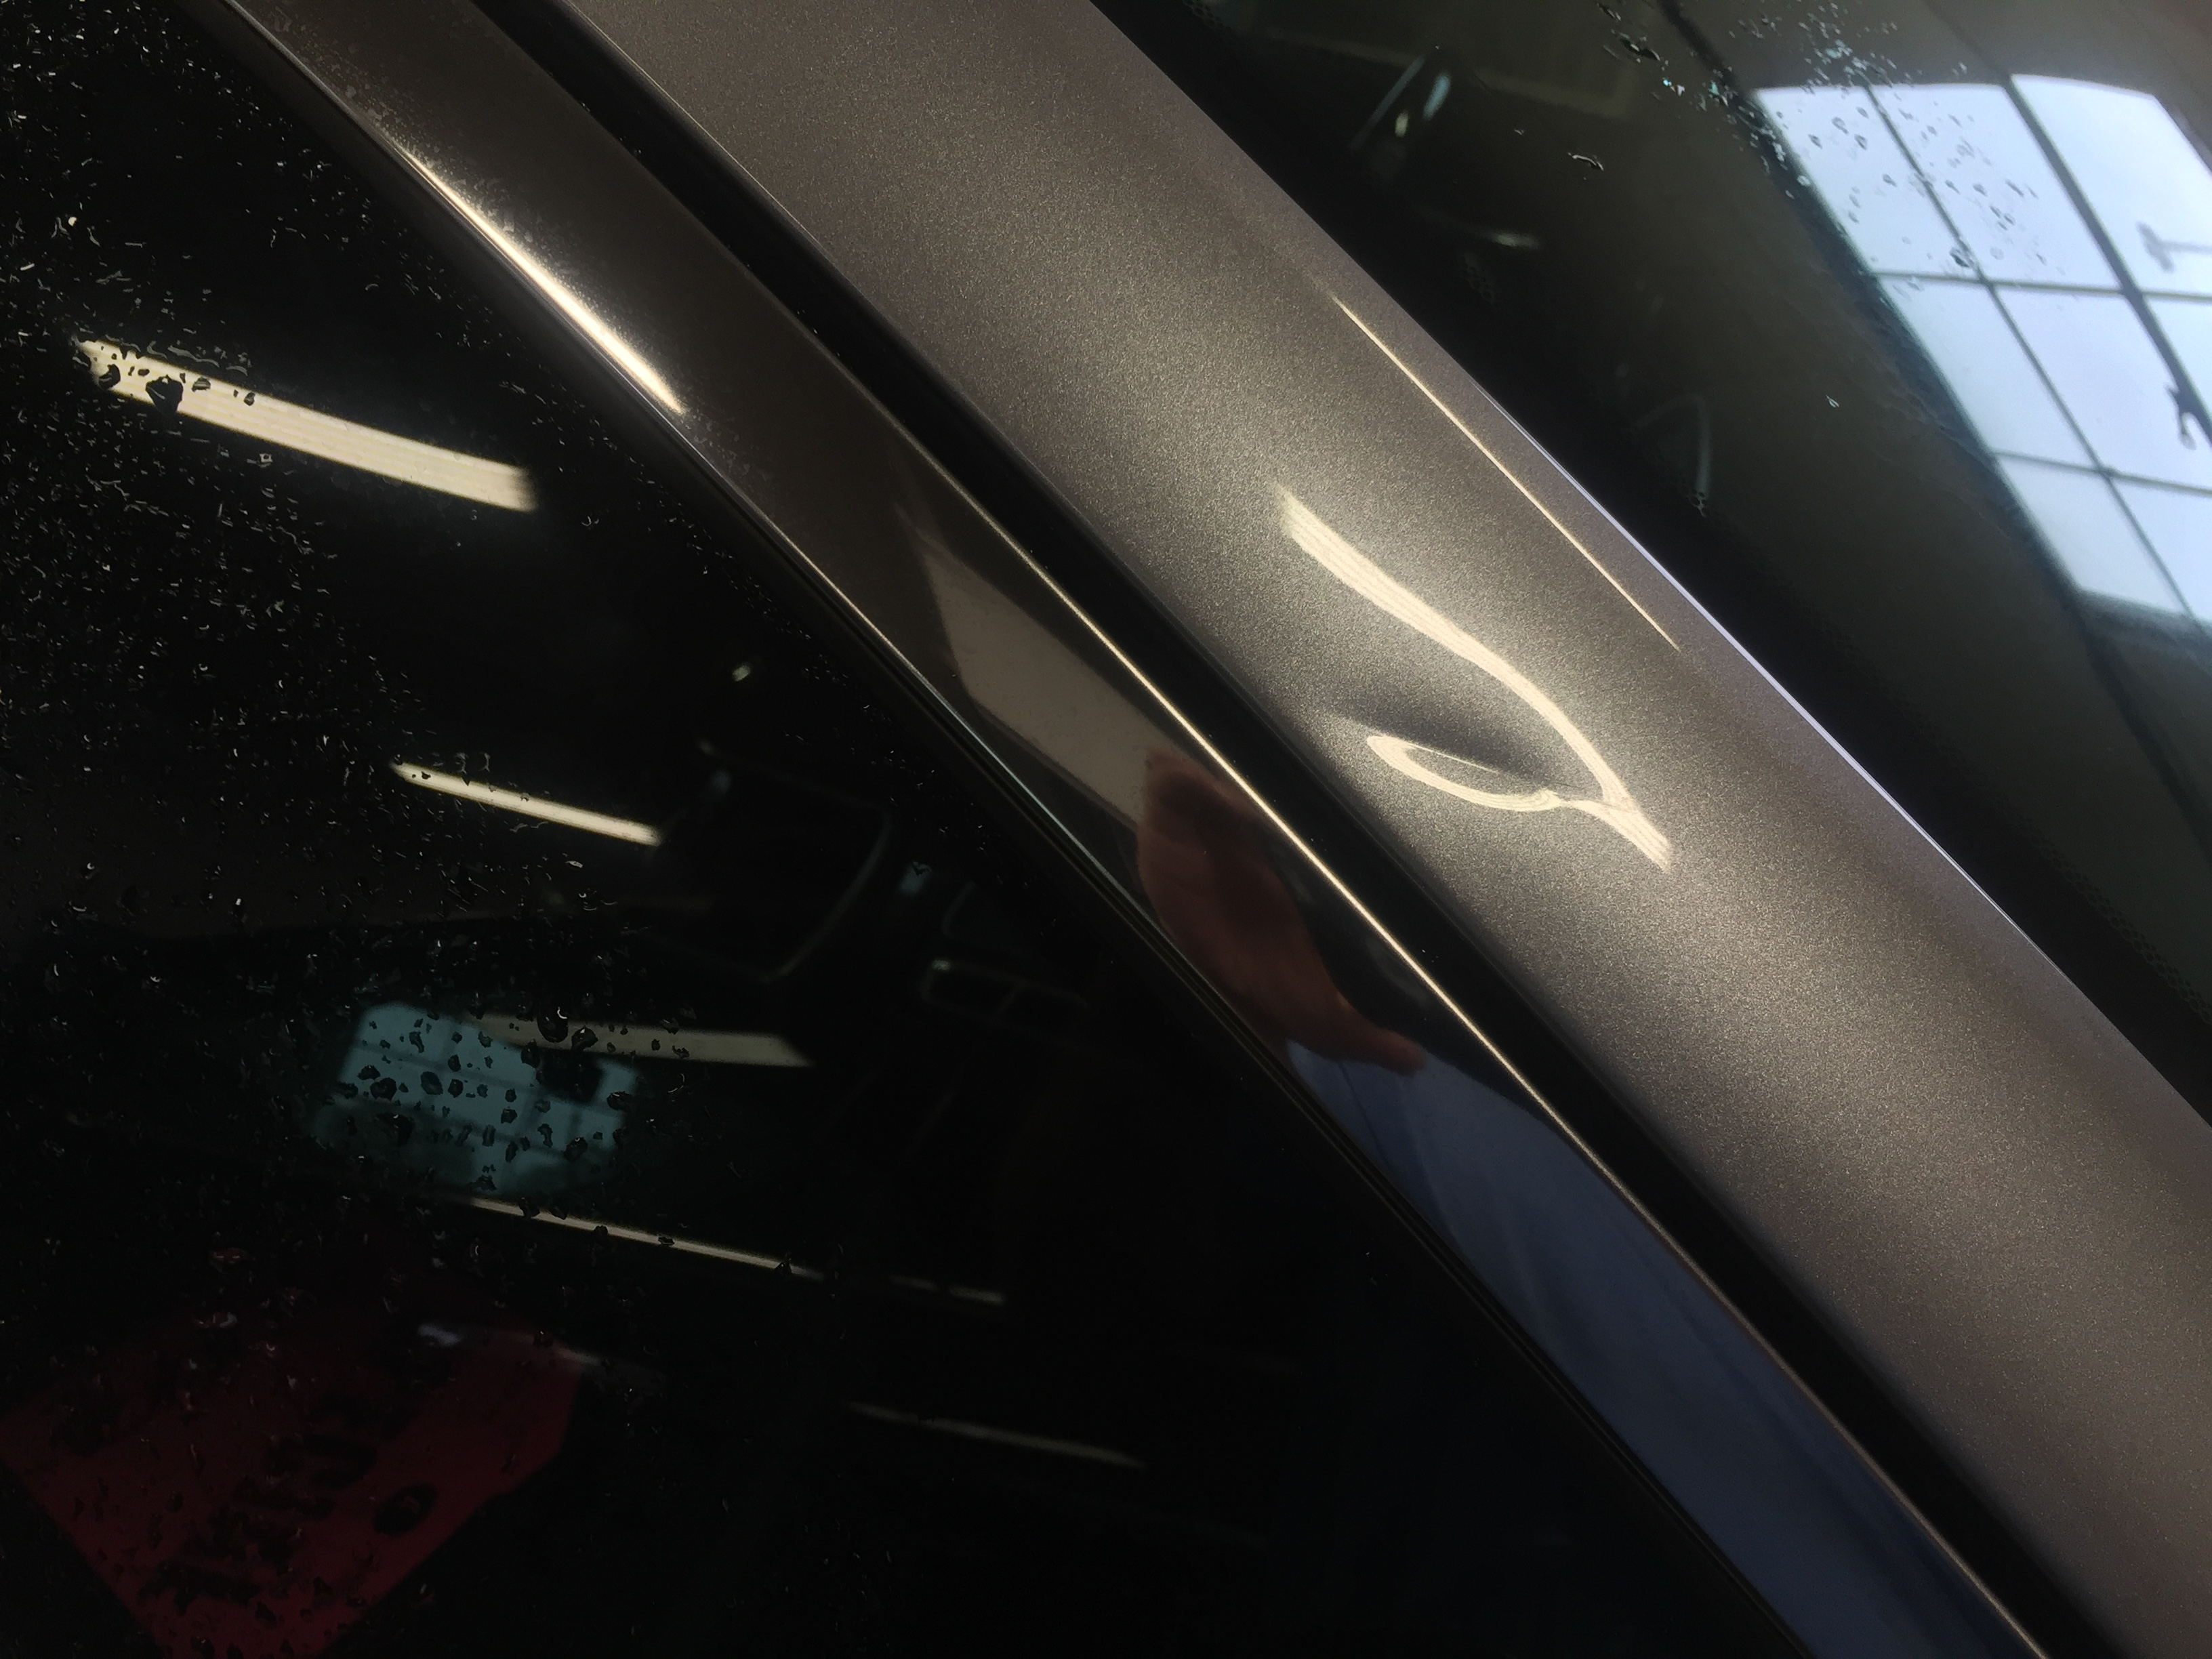 2015 Chrysler 300 Sharp Dent Removal on Pillar all glue pull, paintless dent repair, Springfield, IL http://217dent.com